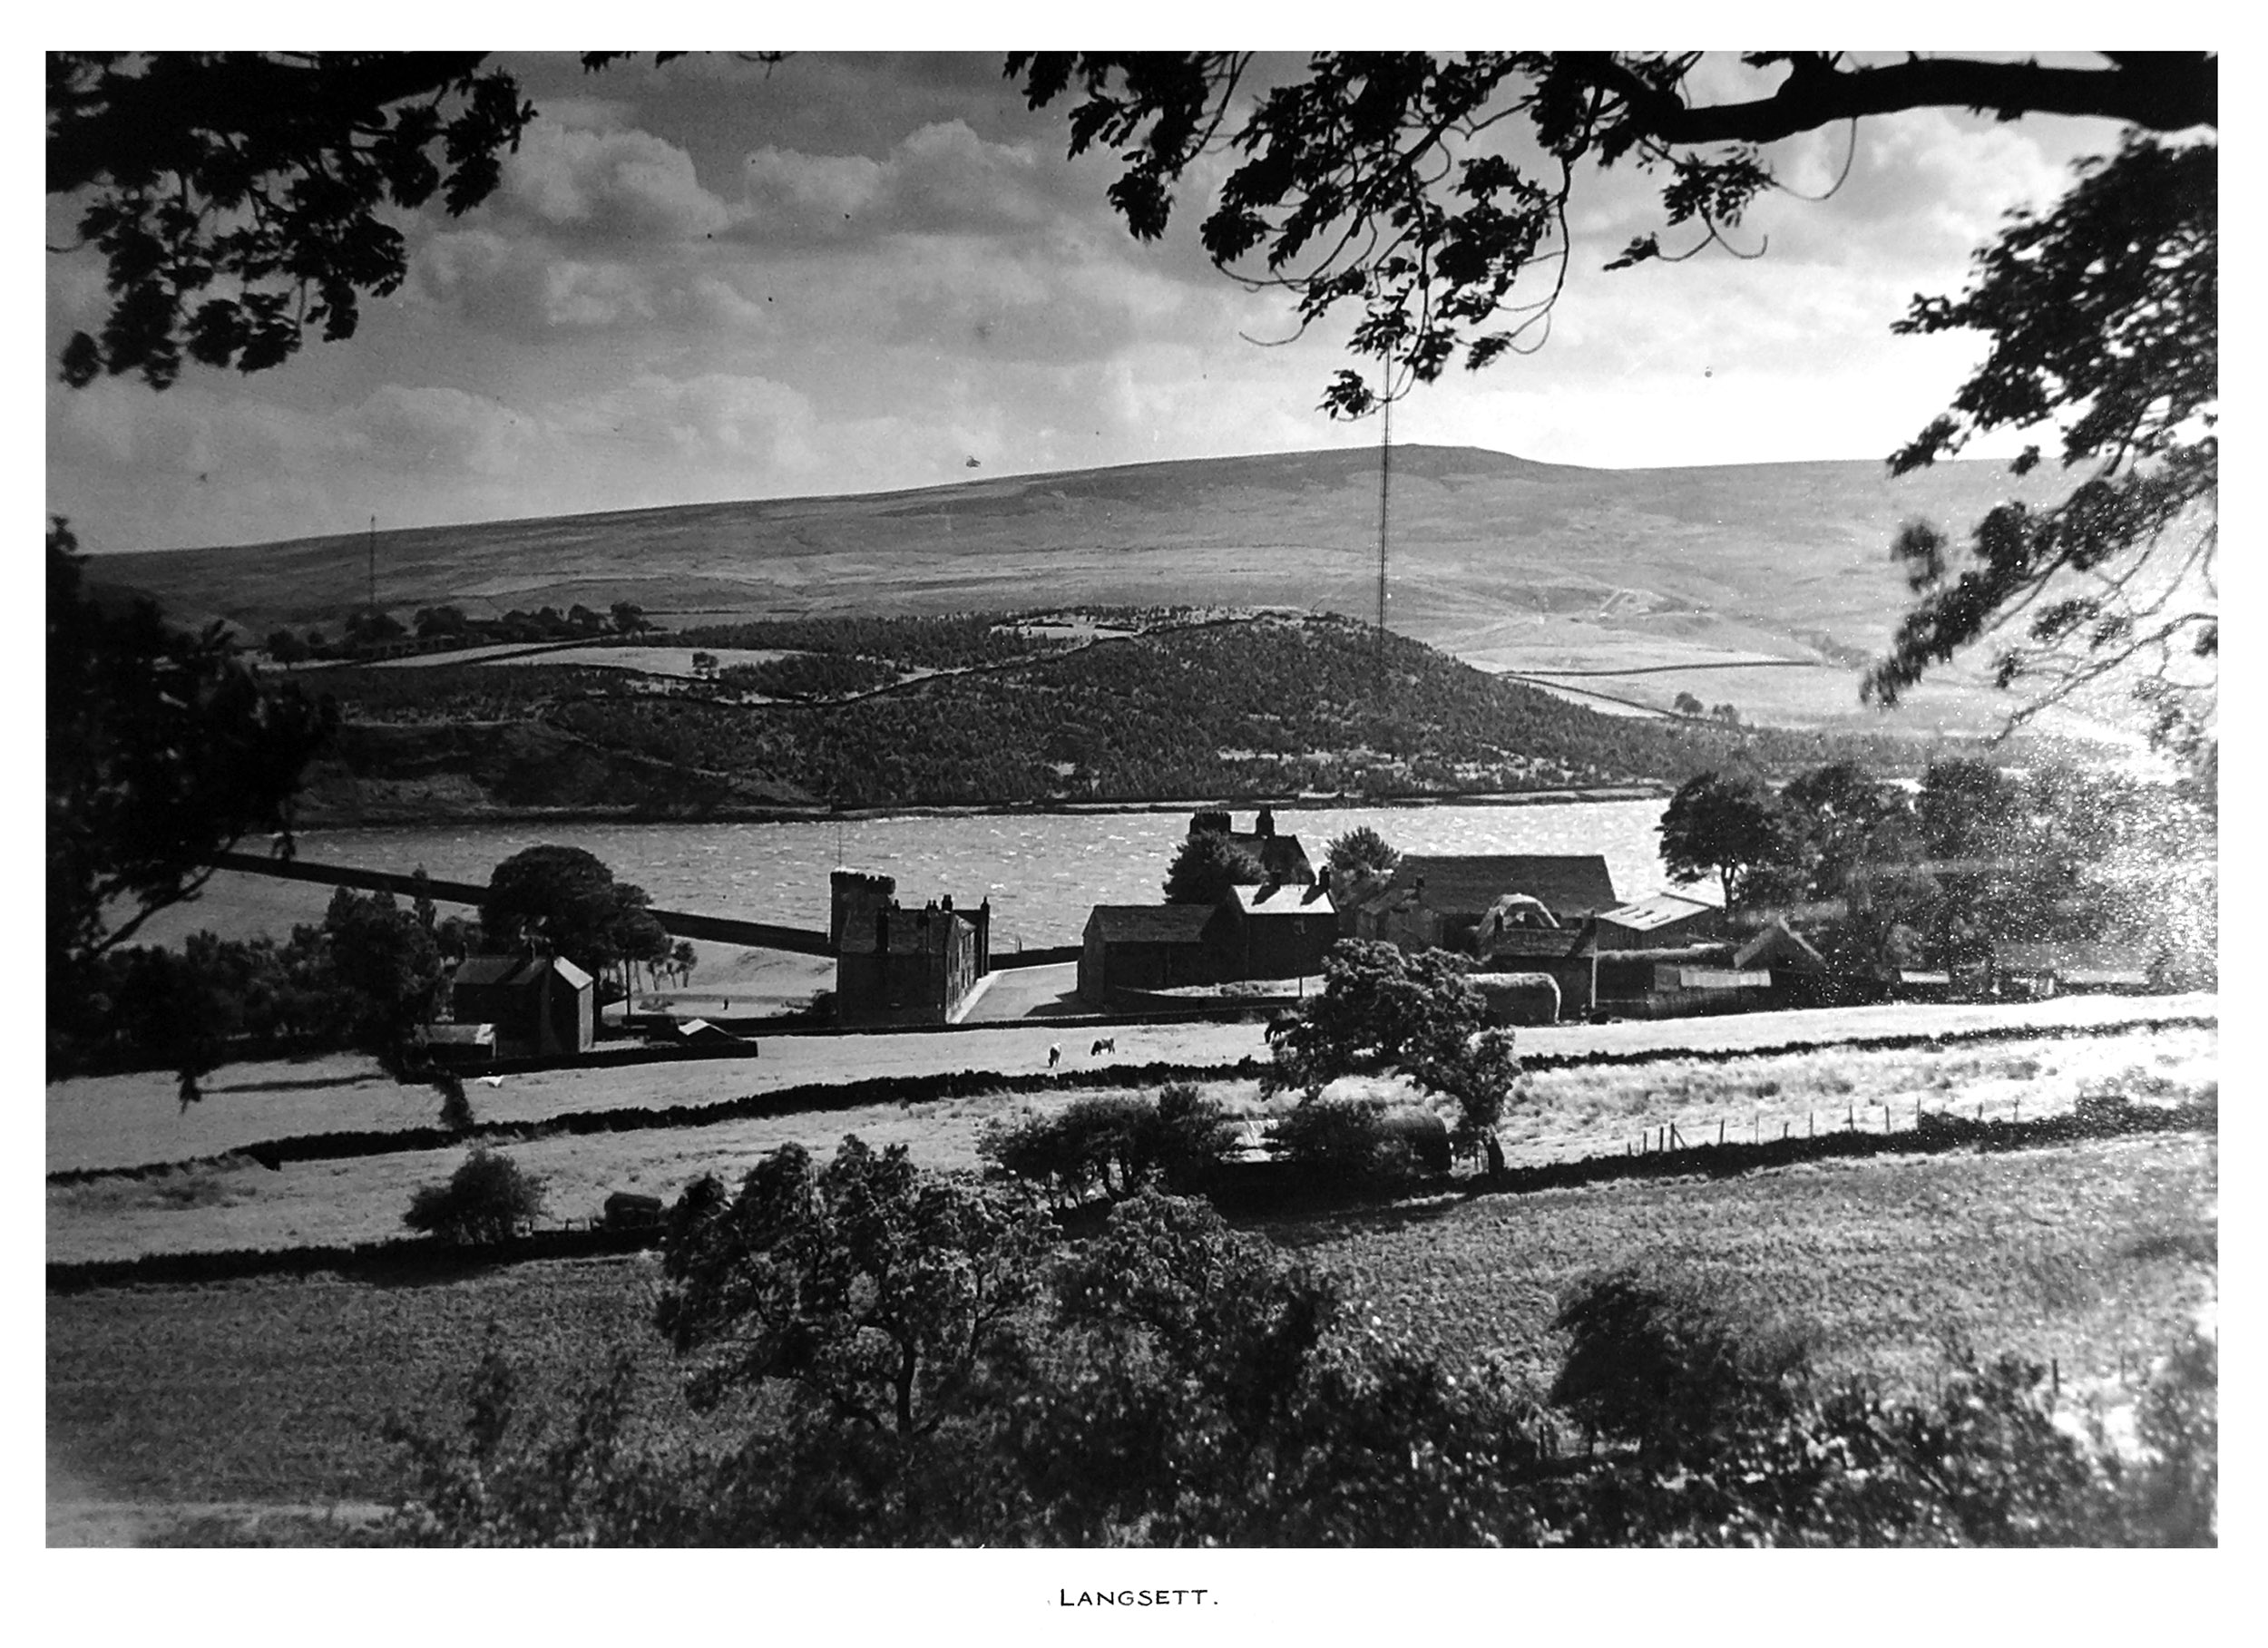 Langsett Dam Historical Photography 1942